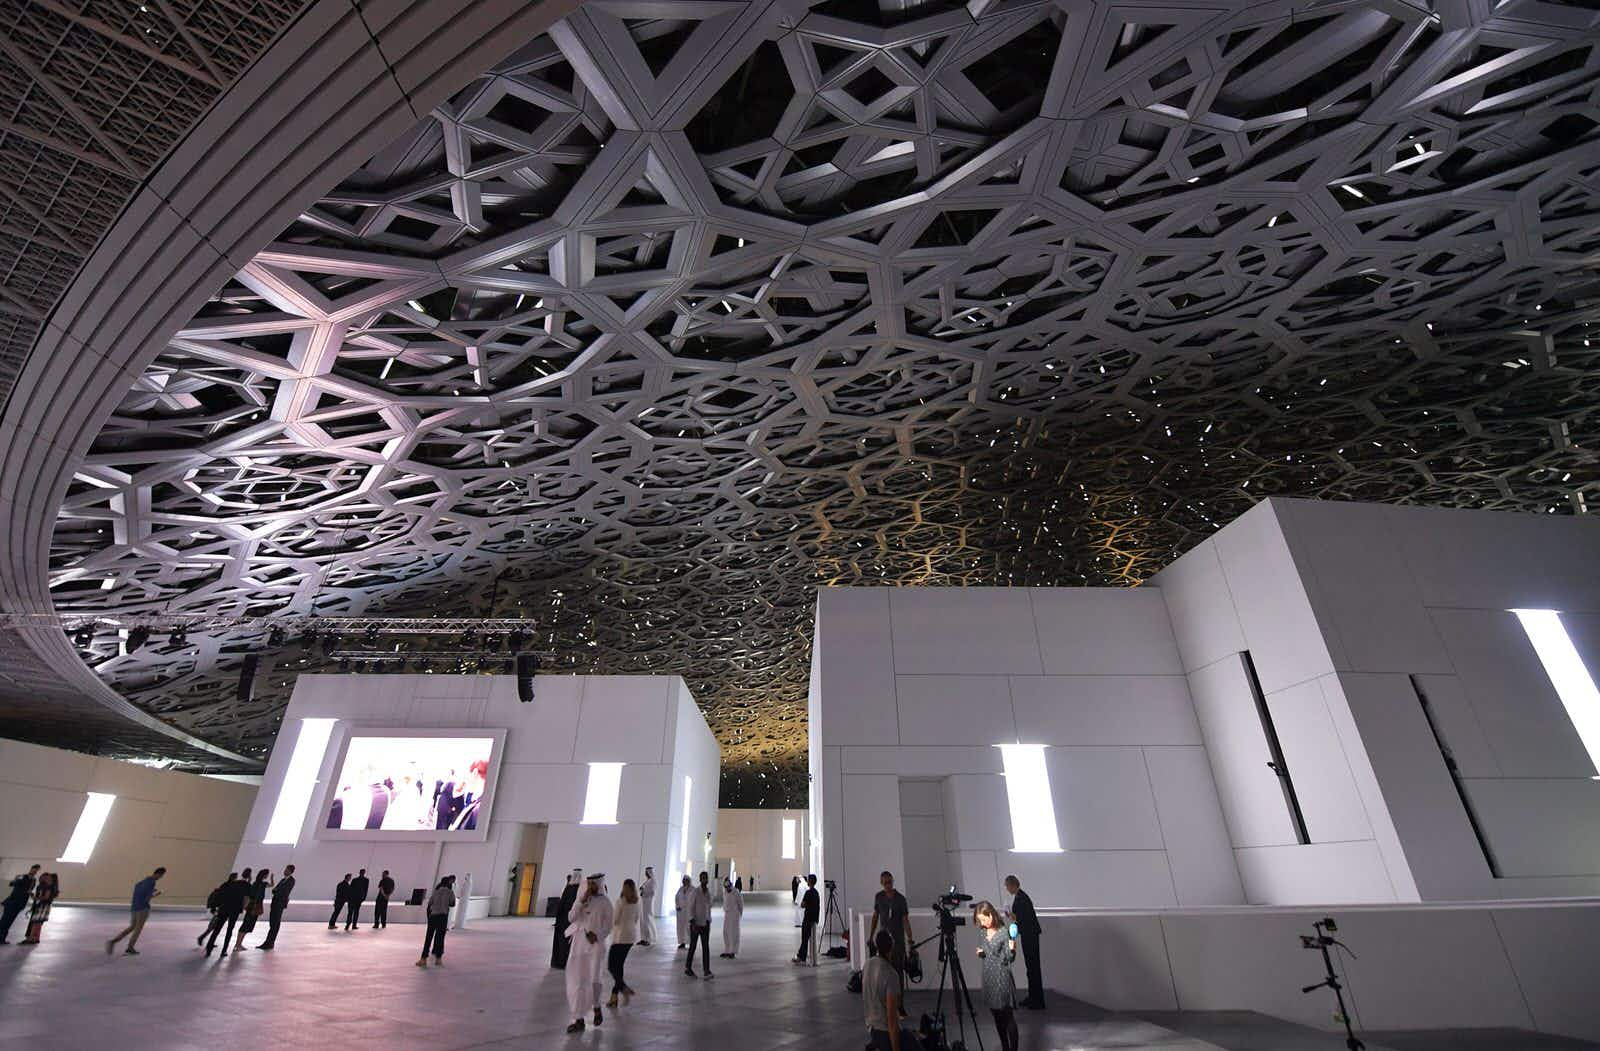 A general view shows people walking under the dome at the Louvre Abu Dhabi Museum that was designed by French architect Jean Nouvel during its inauguration on November 8, 2017 on Saadiyat island in the Emirati capital. More than a decade in the making, the Louvre Abu Dhabi opened its doors, bringing the famed name to the Arab world for the first time. / AFP PHOTO / ludovic MARIN / RESTRICTED TO EDITORIAL USE - MANDATORY MENTION OF THE ARTIST UPON PUBLICATION - TO ILLUSTRATE THE EVENT AS SPECIFIED IN THE CAPTION        (Photo credit should read LUDOVIC MARIN/AFP/Getty Images)